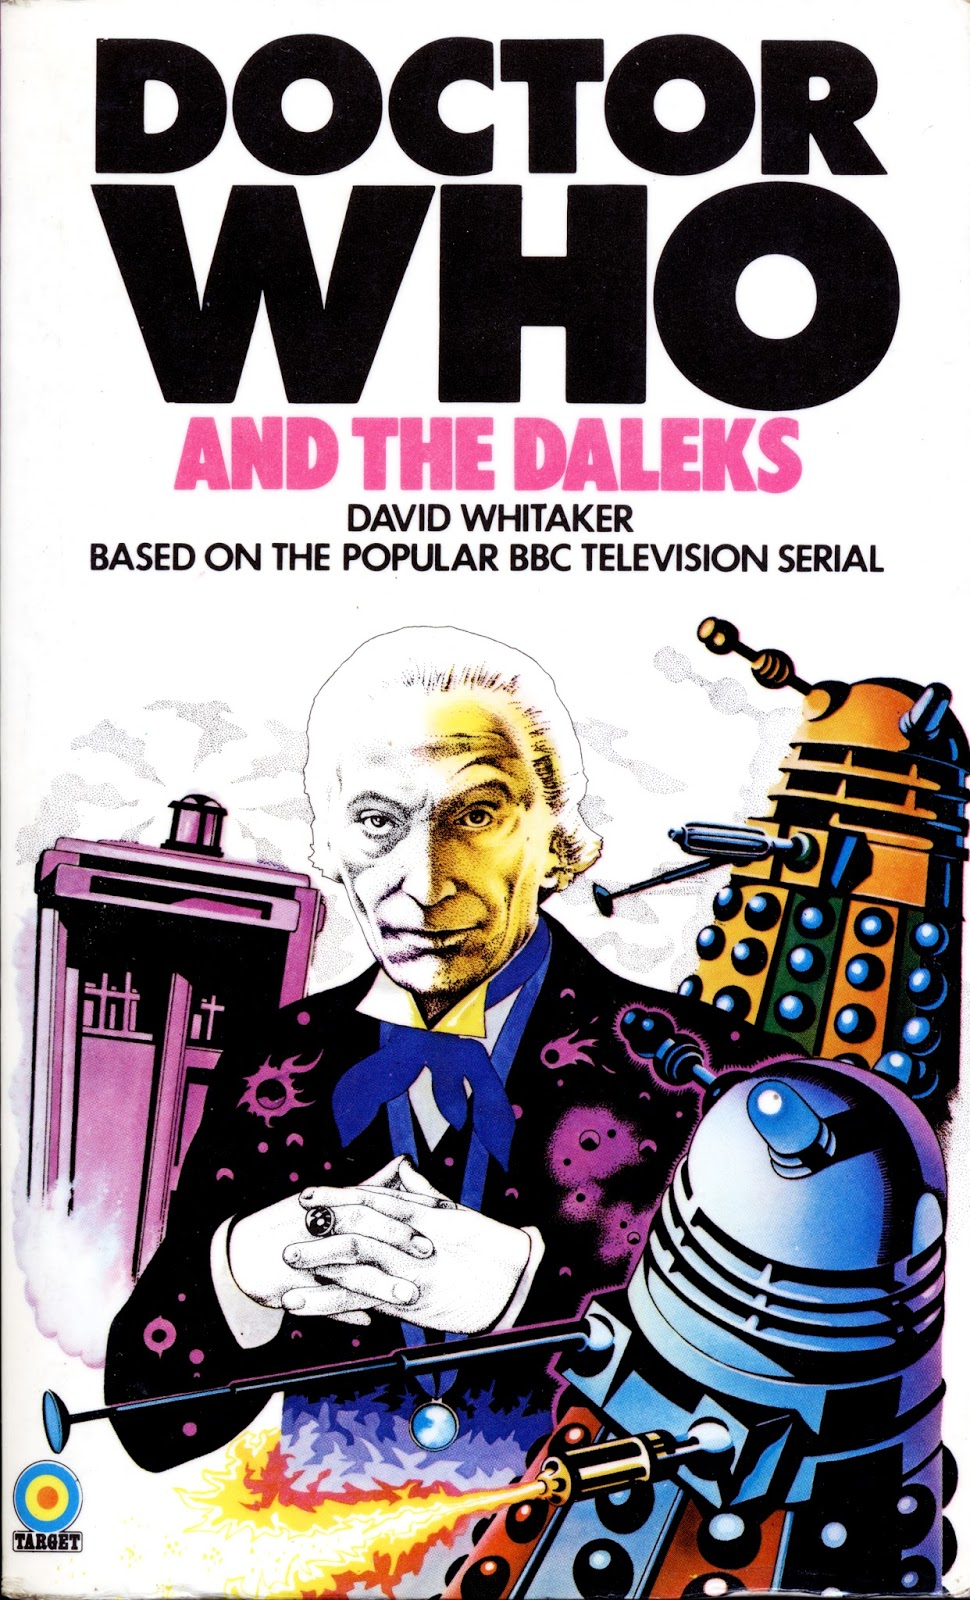 Book Covering Contact Target : Howeswho the reprint conundrum target doctor who